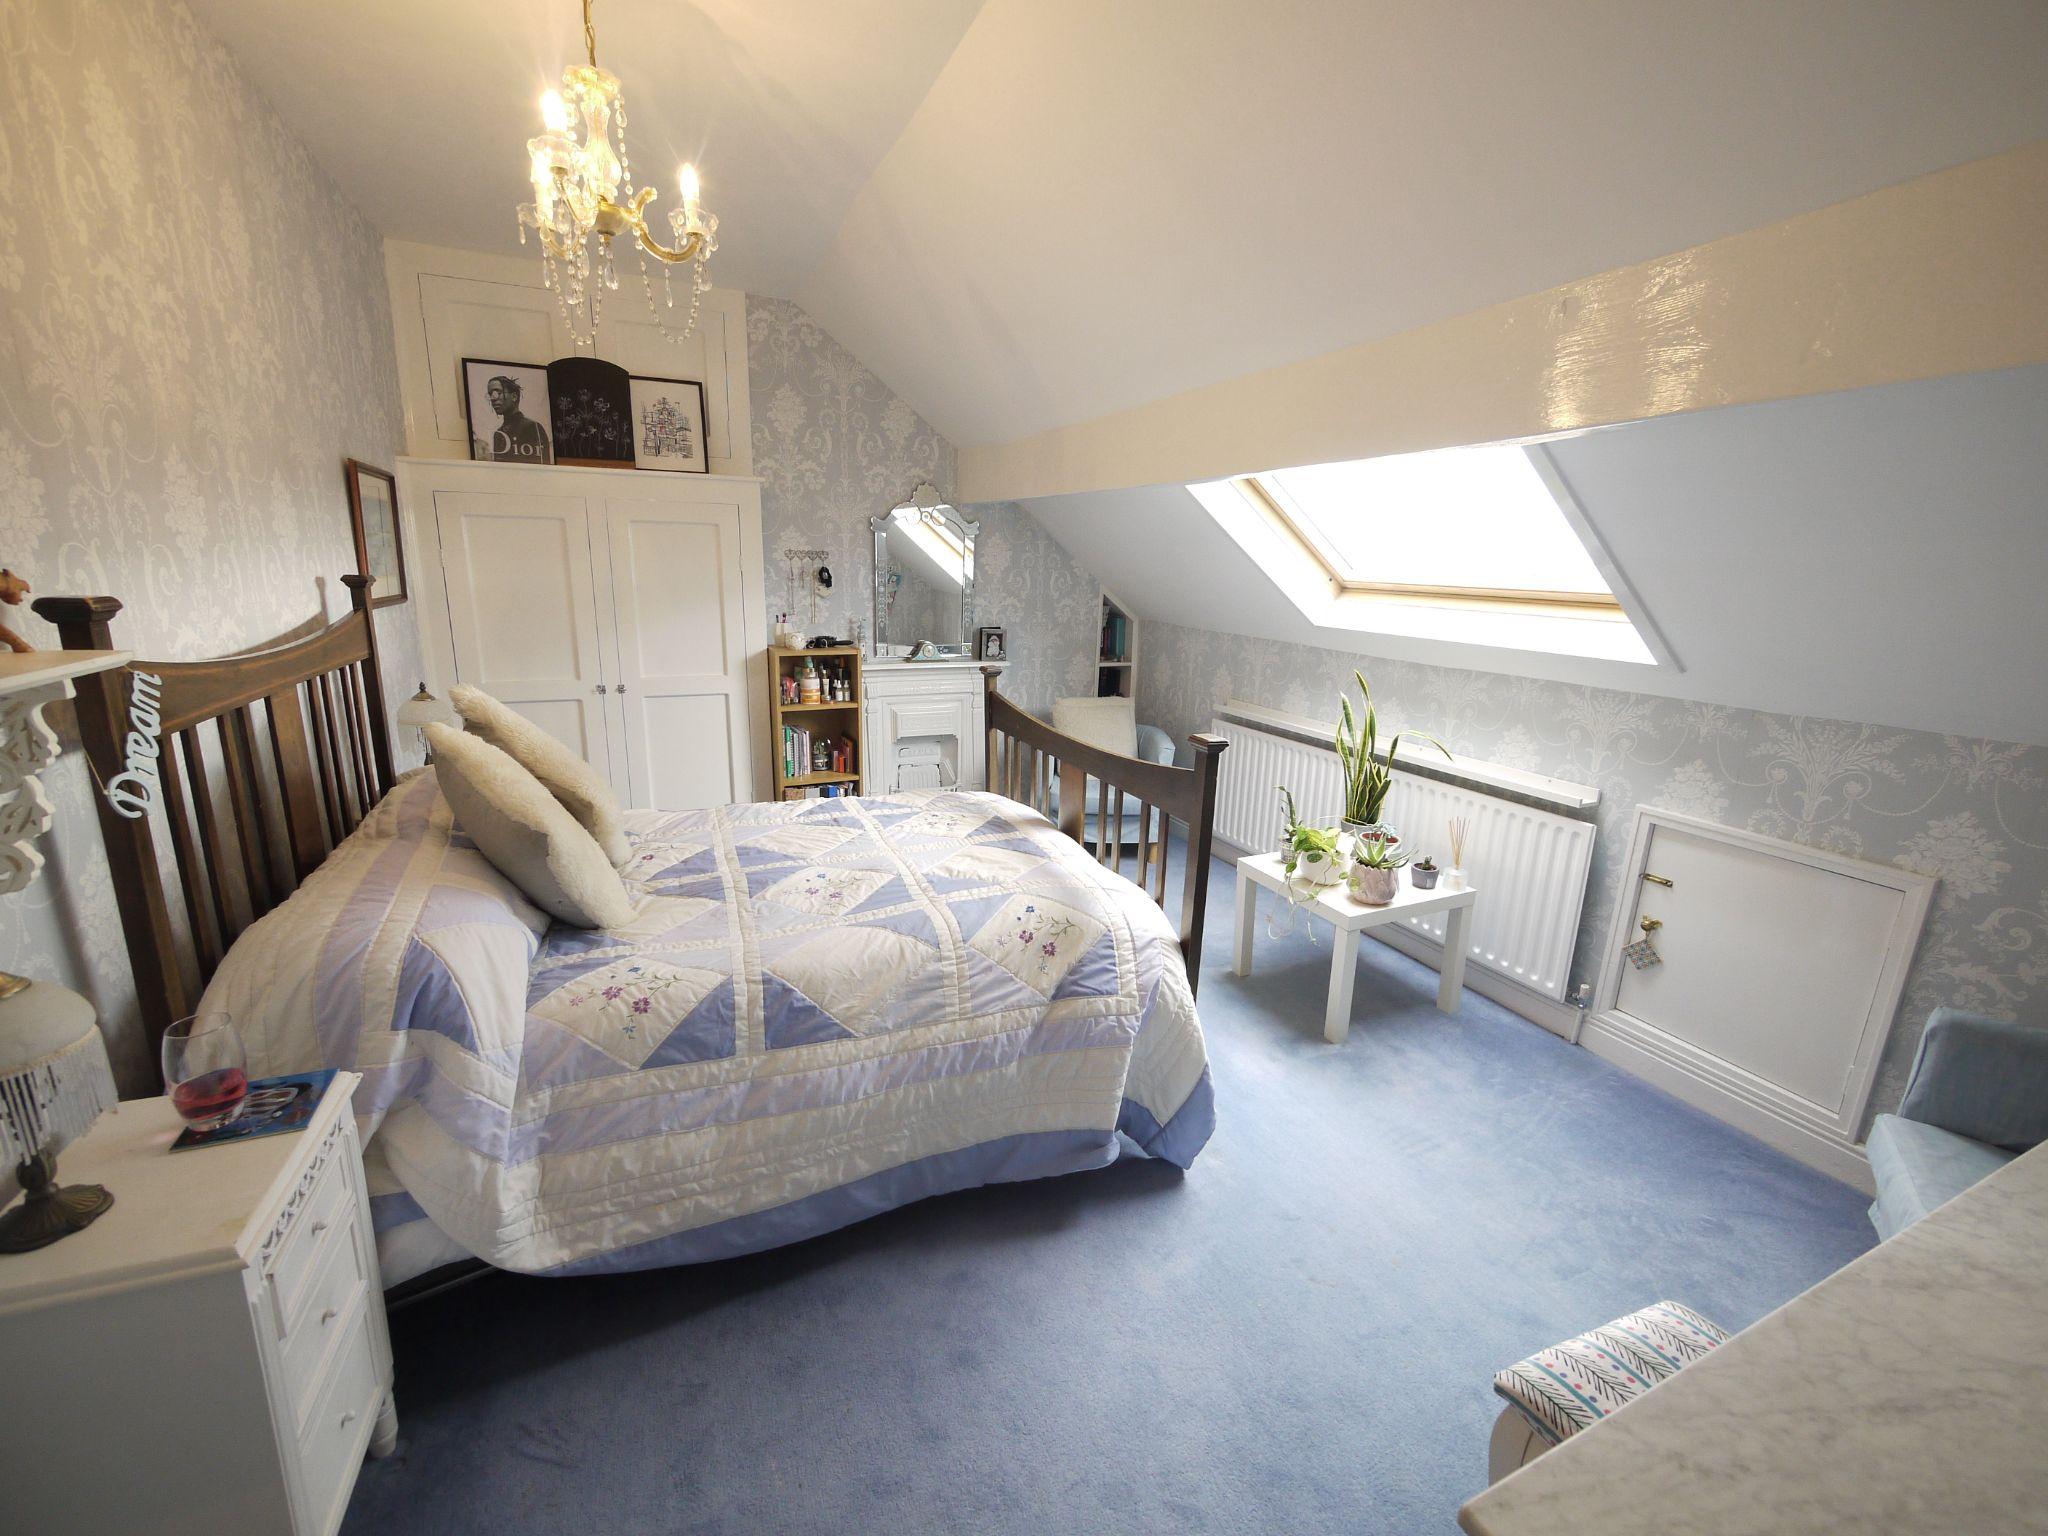 4 bedroom end terraced house SSTC in Halifax - Photograph 6.